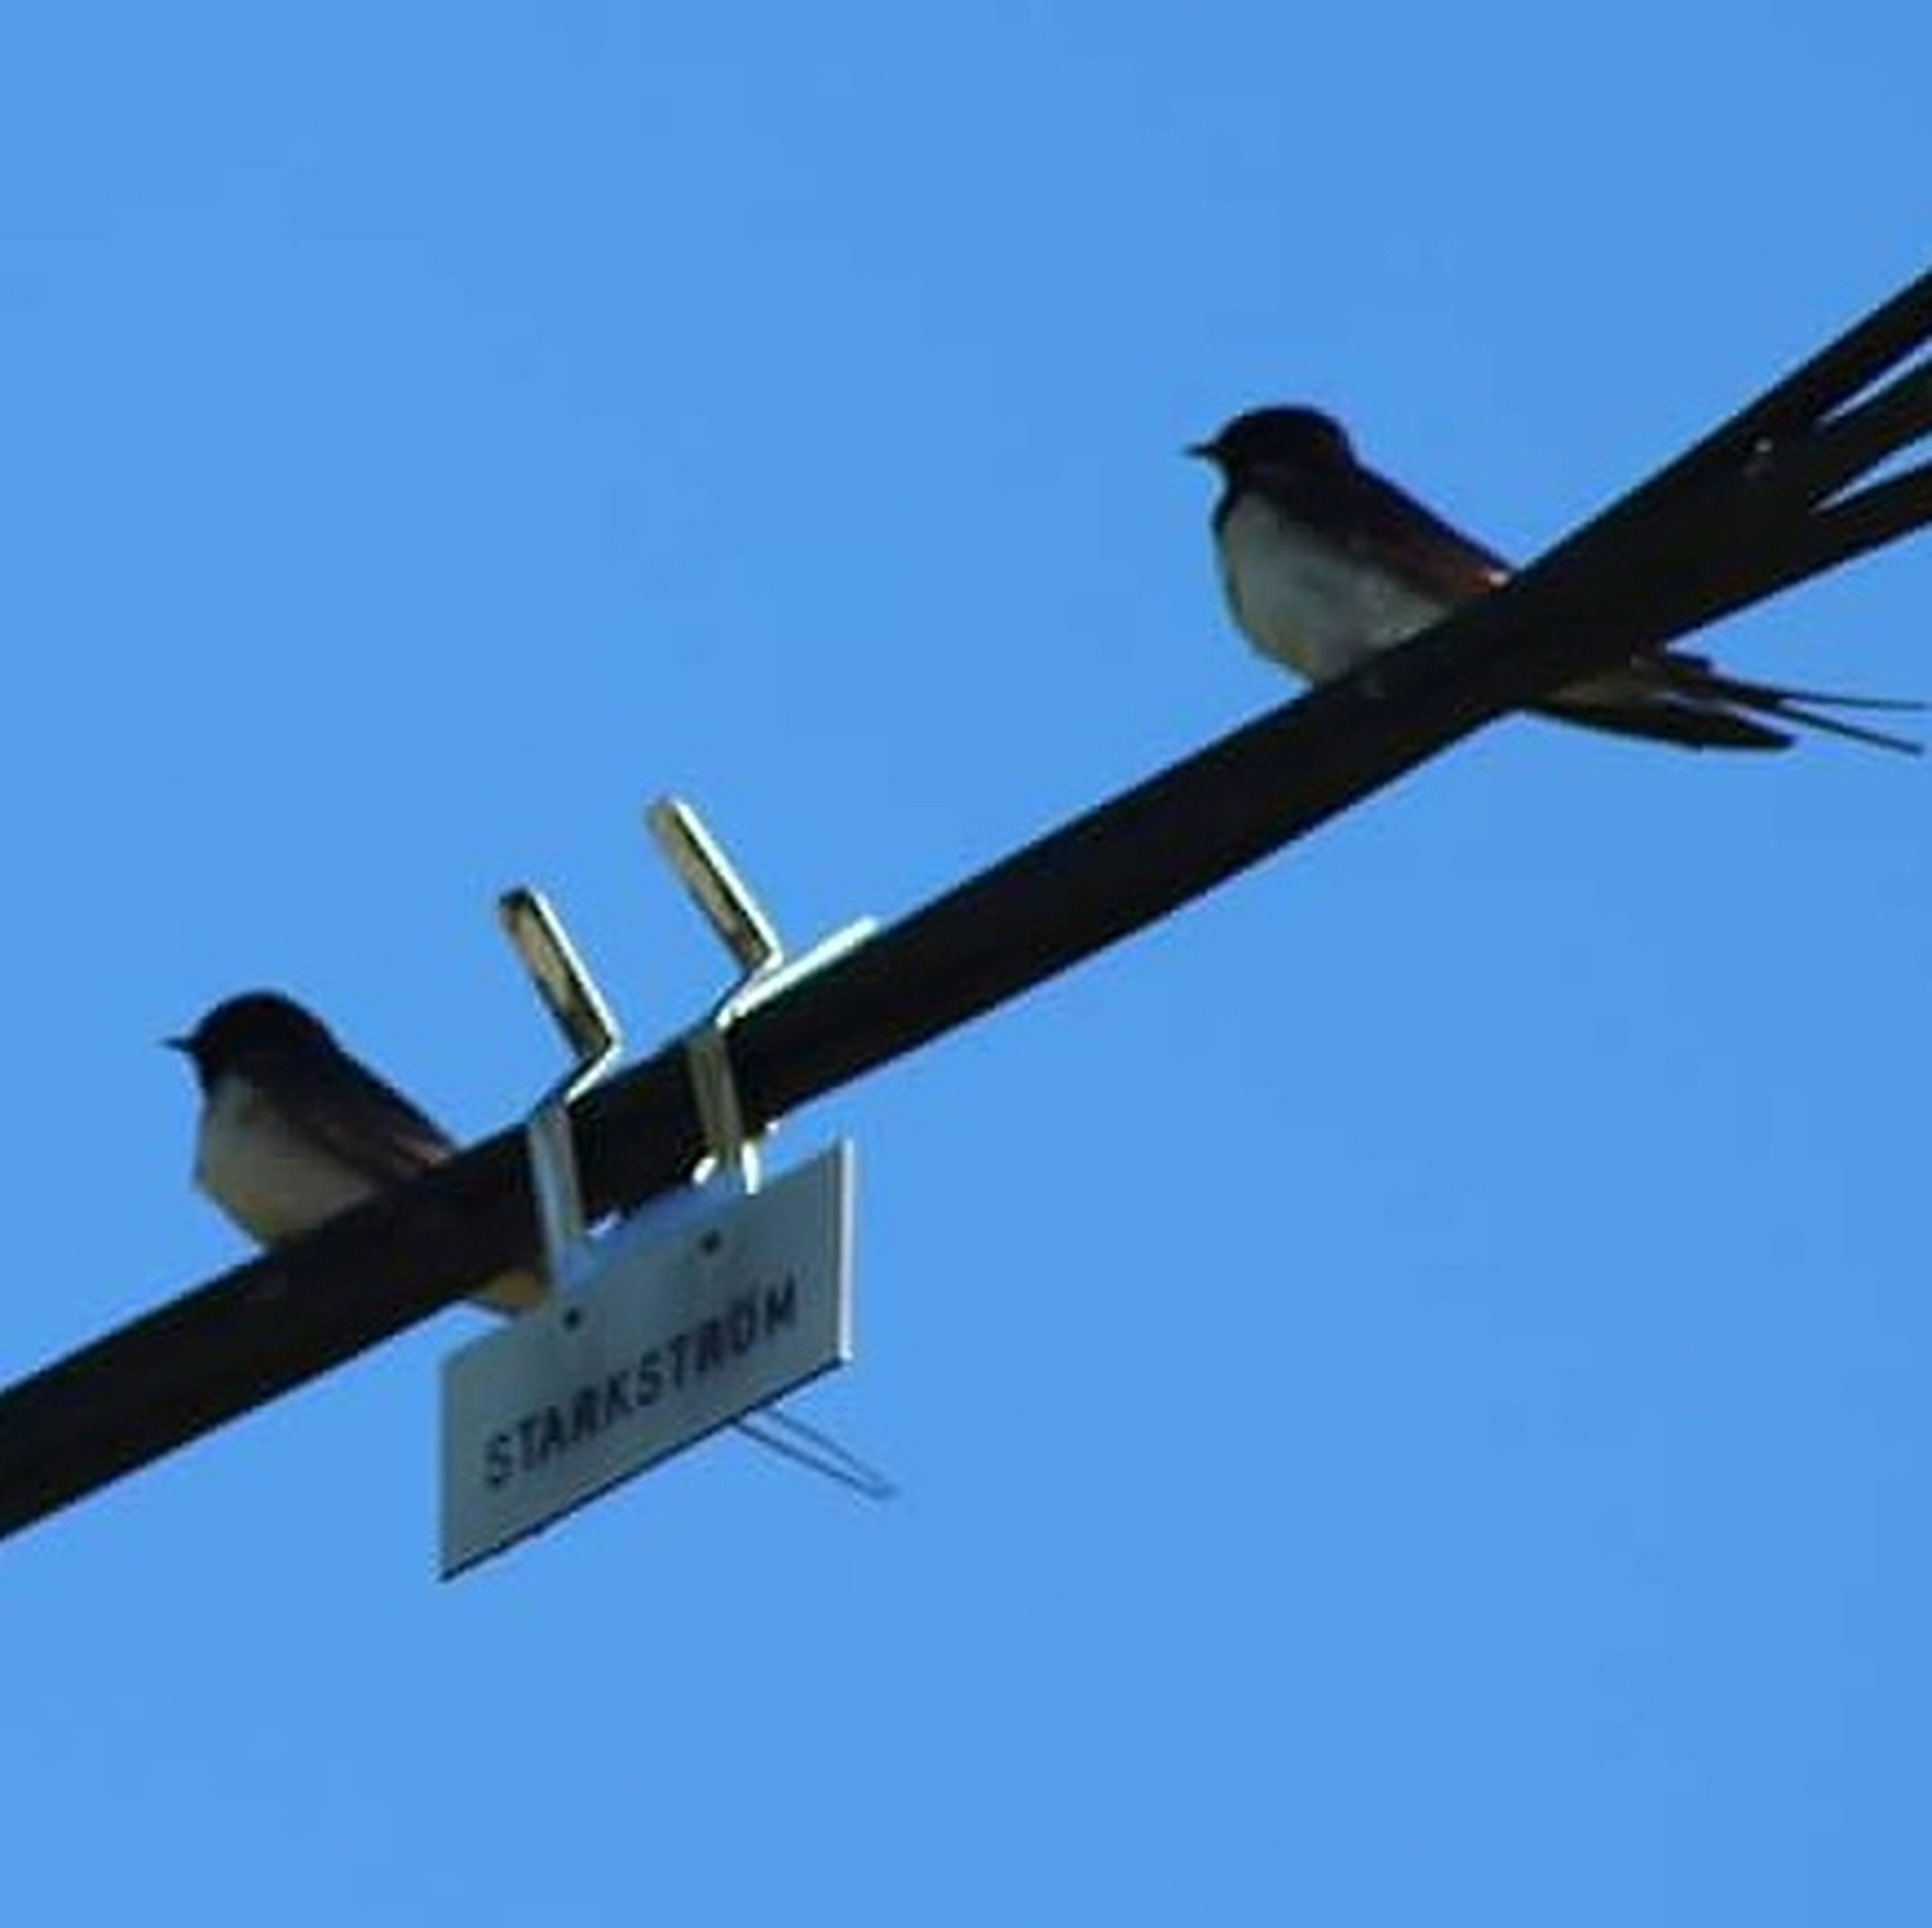 low angle view, guidance, animal themes, blue, direction, bird, clear sky, animal wildlife, animals in the wild, no people, day, outdoors, road sign, one animal, perching, stoplight, sky, raven - bird, close-up